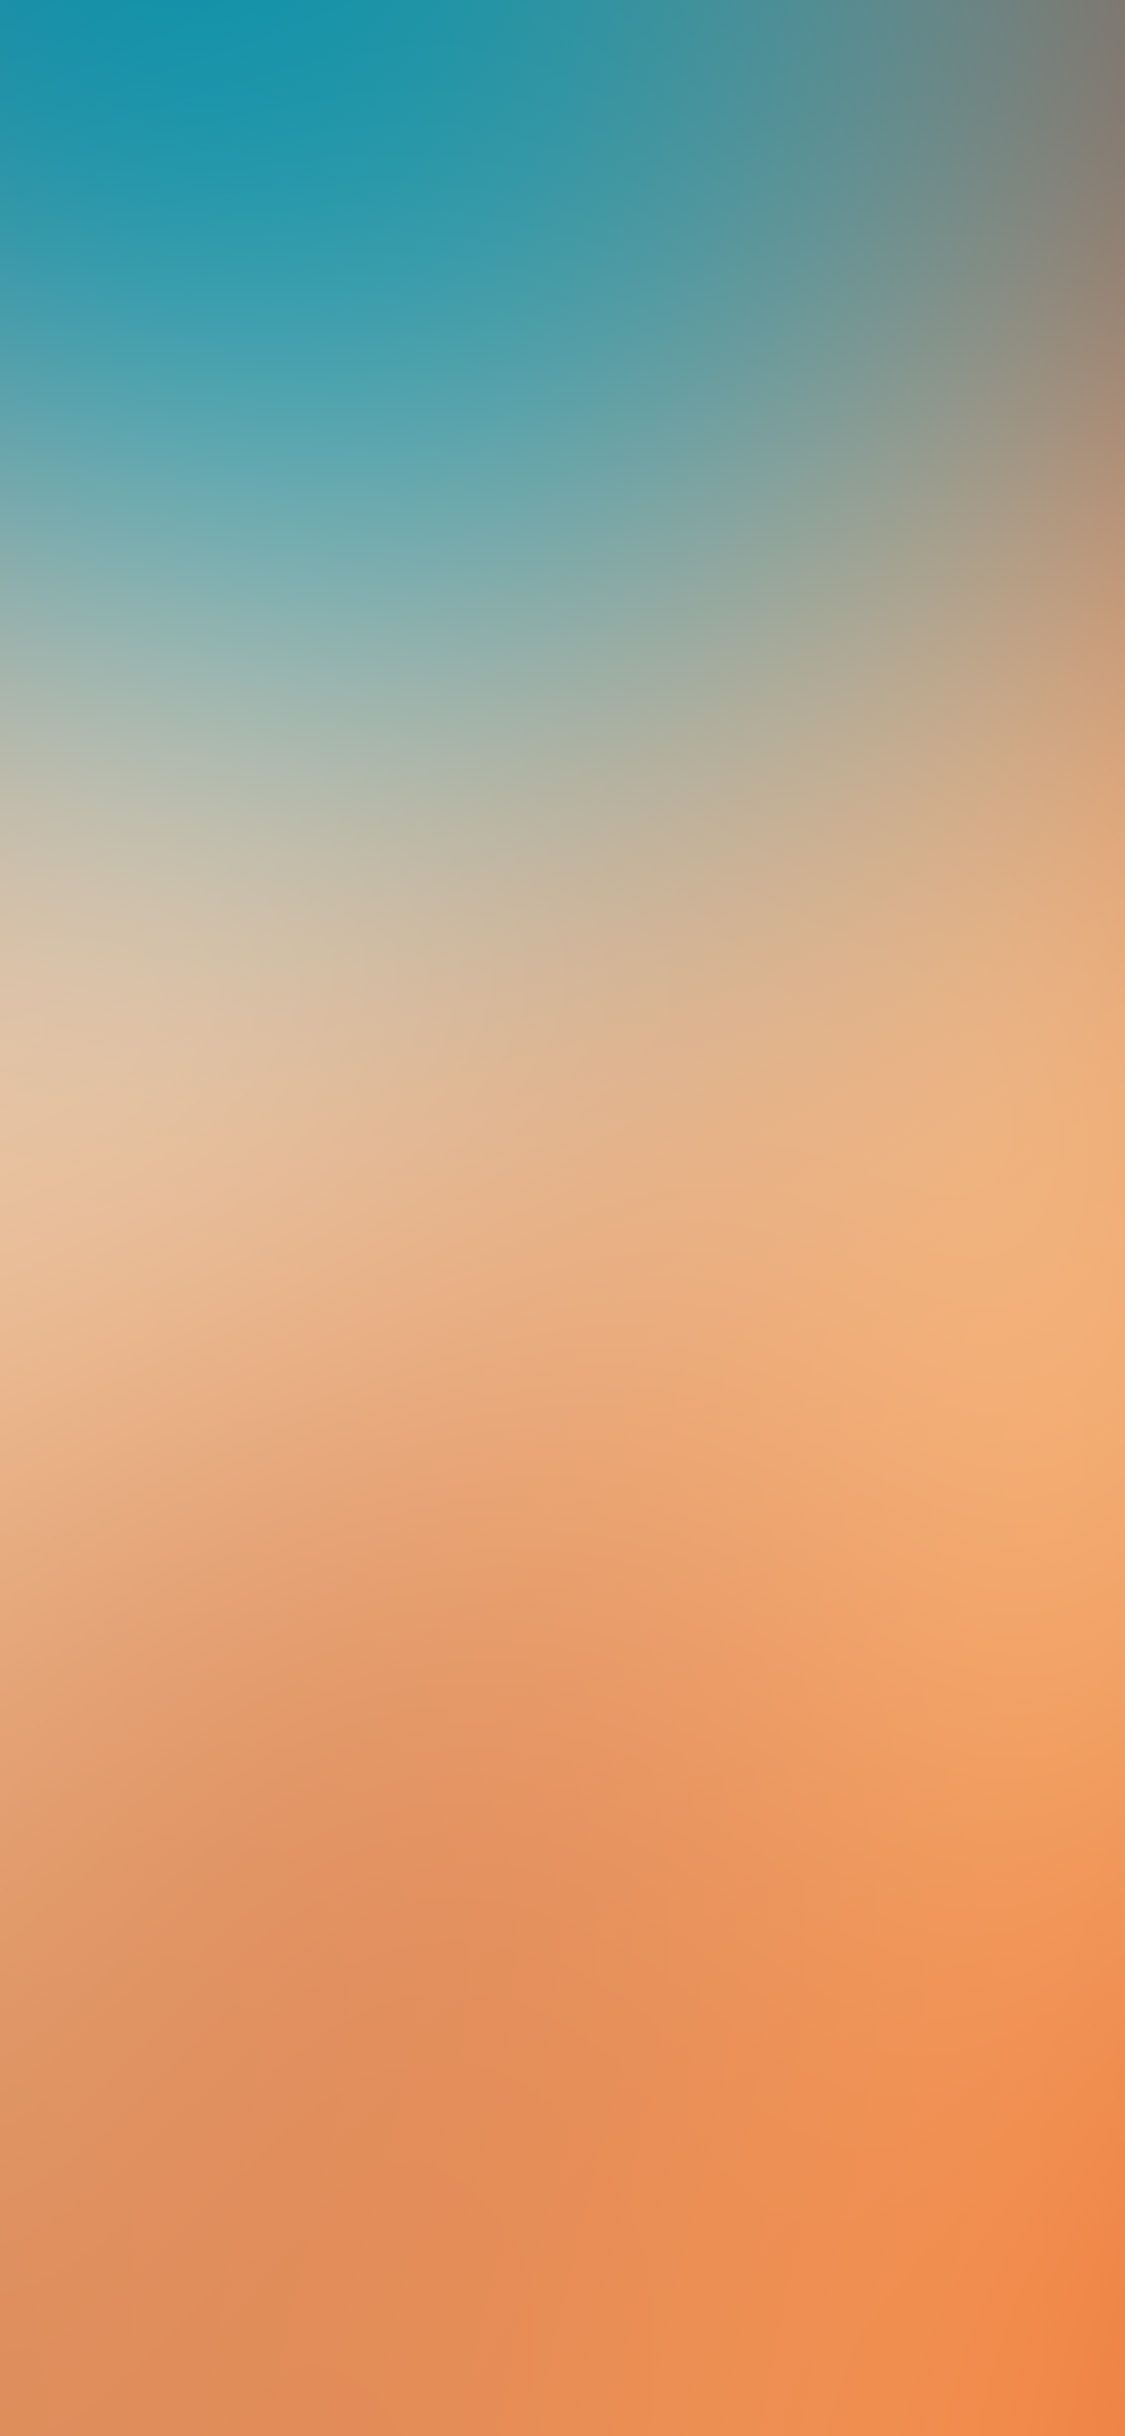 iPhonexpapers.com-Apple-iPhone-wallpaper-sn45-sky-red-orange-blur-gradation